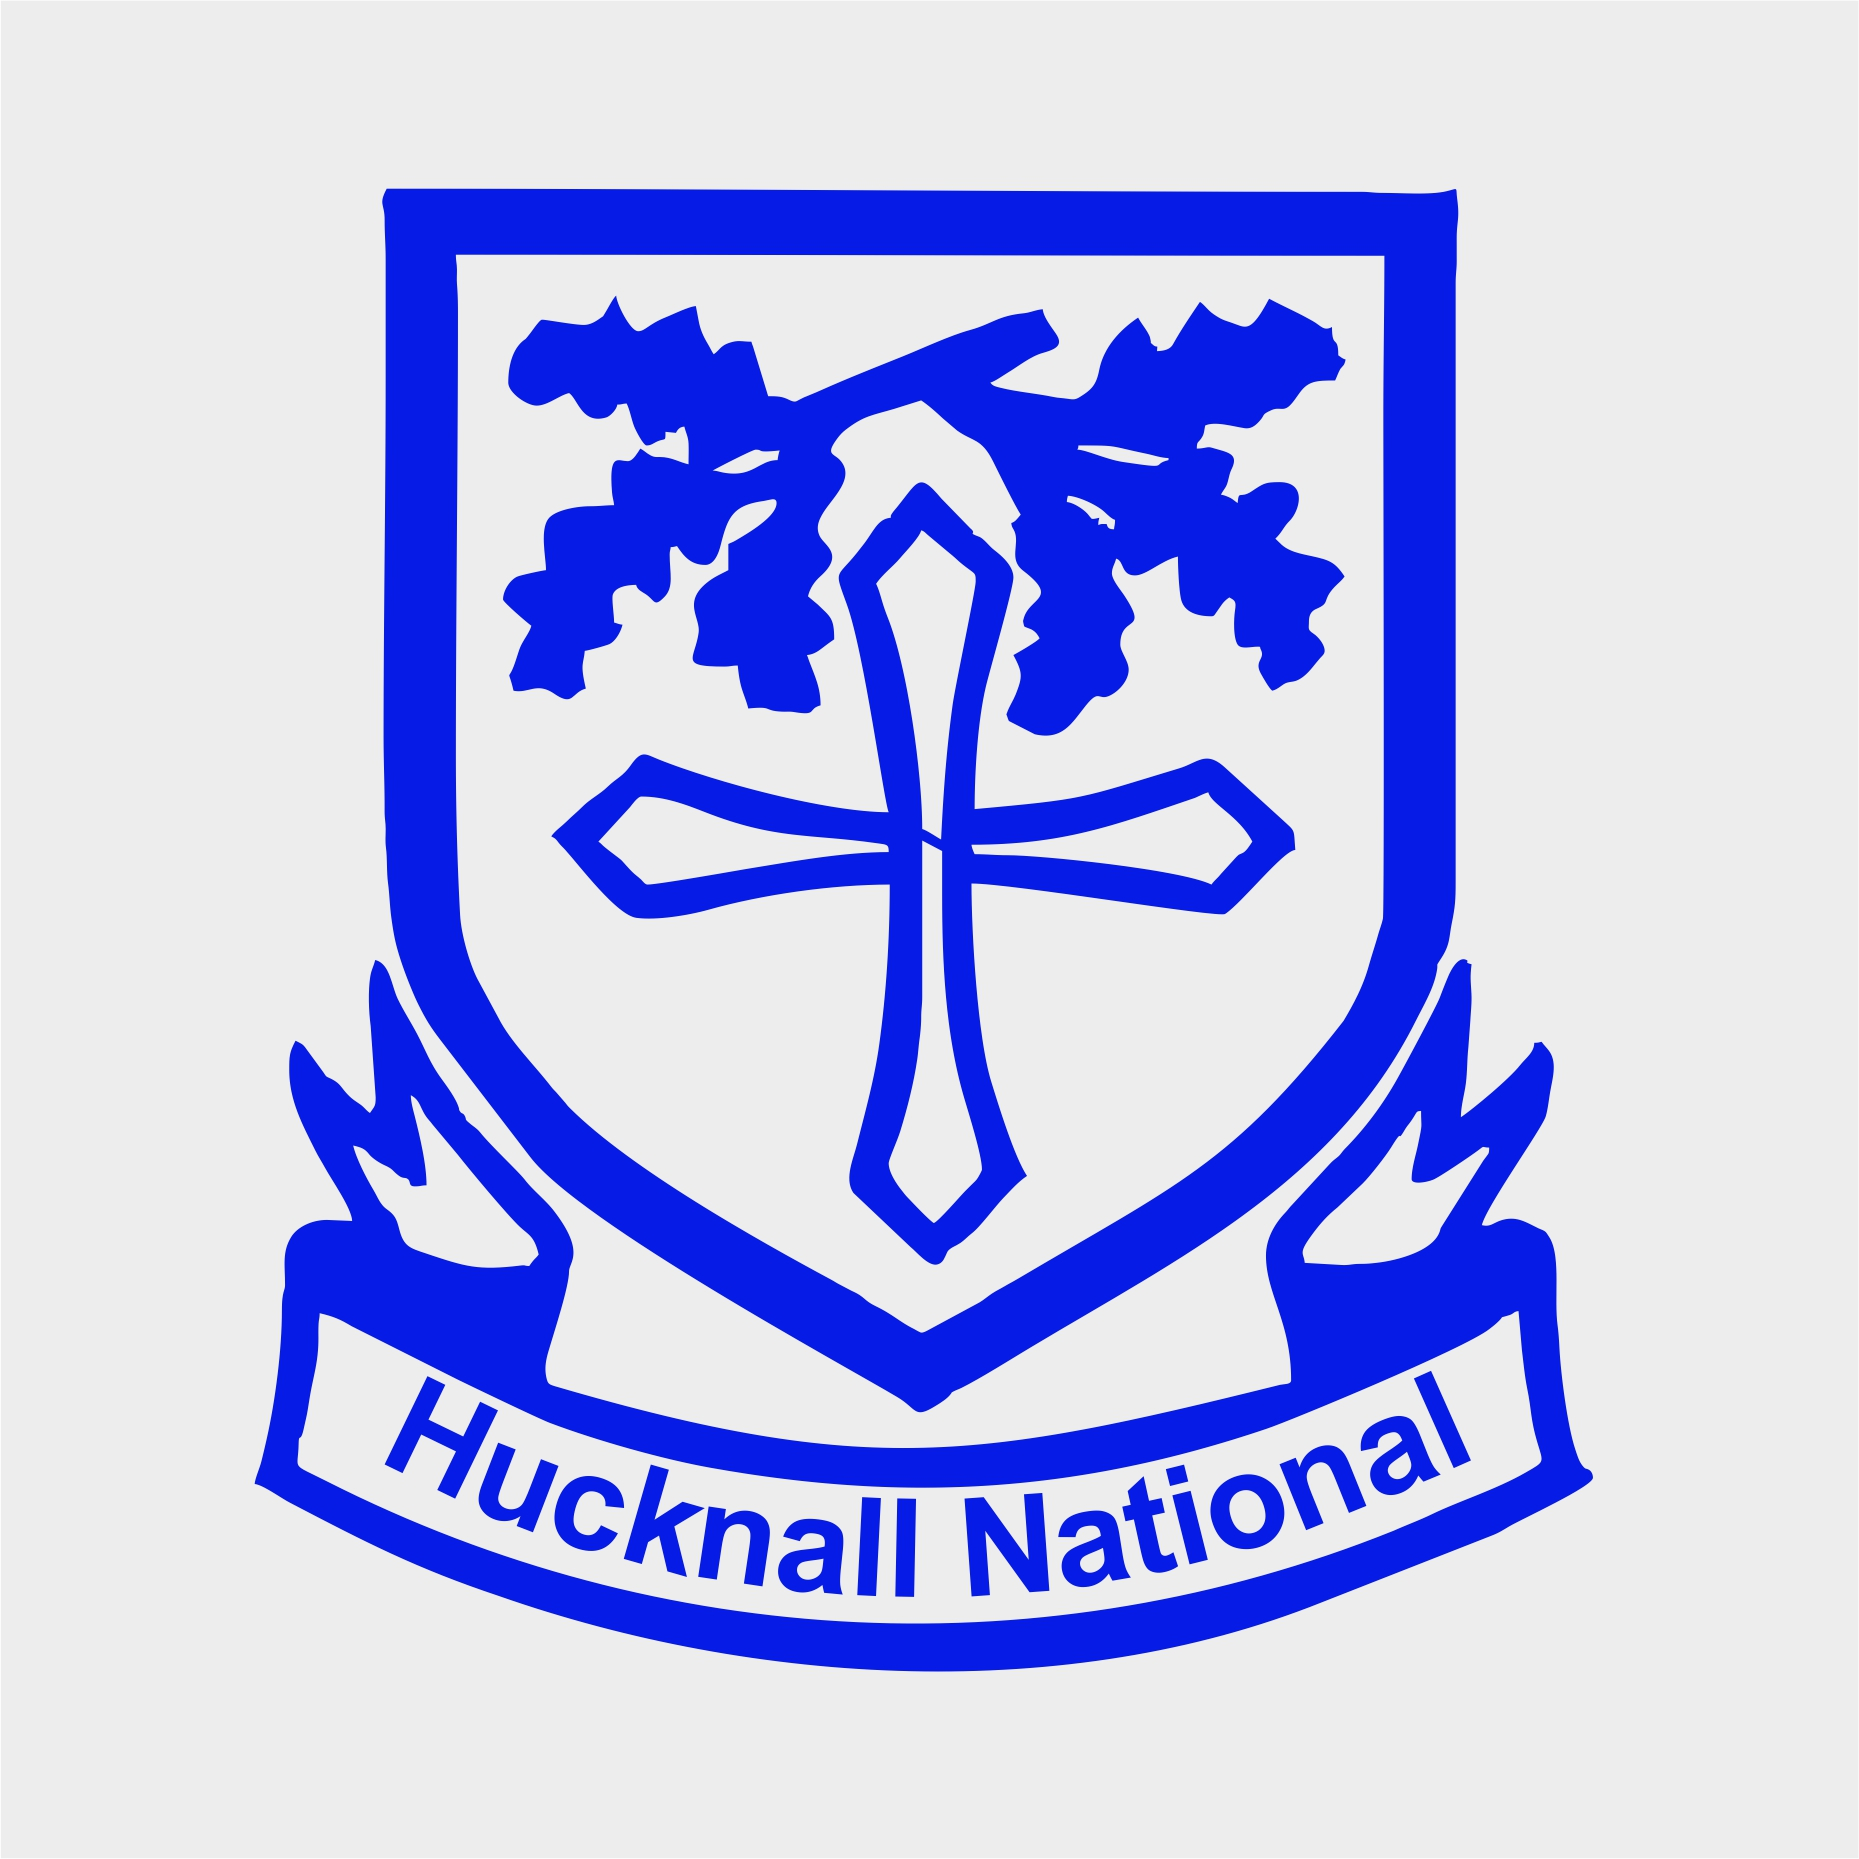 Hucknall National C of E Primary School logo.jpg